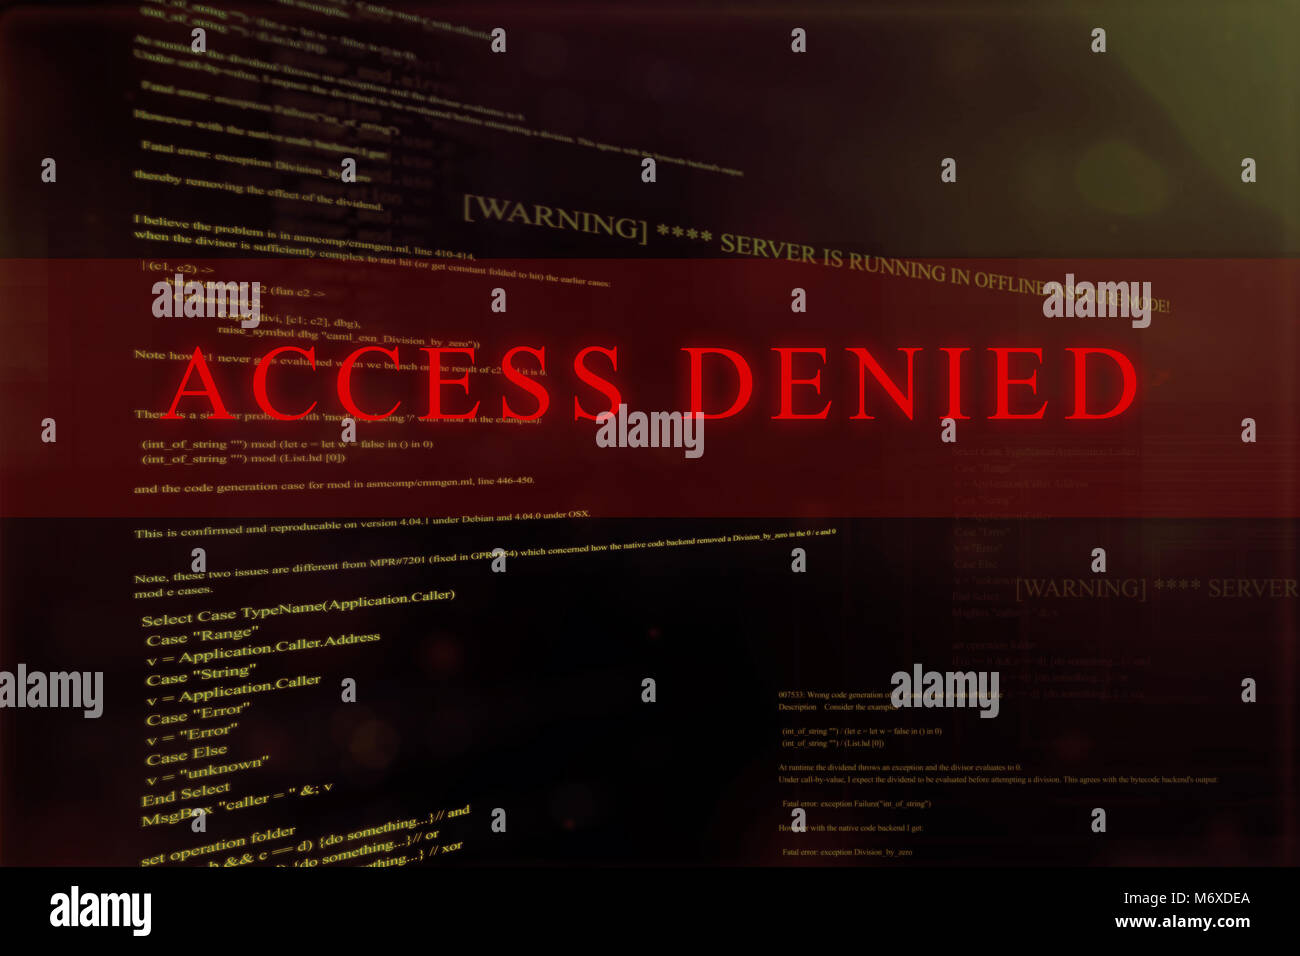 Access denied on a computer system Stock Photo: 176372962